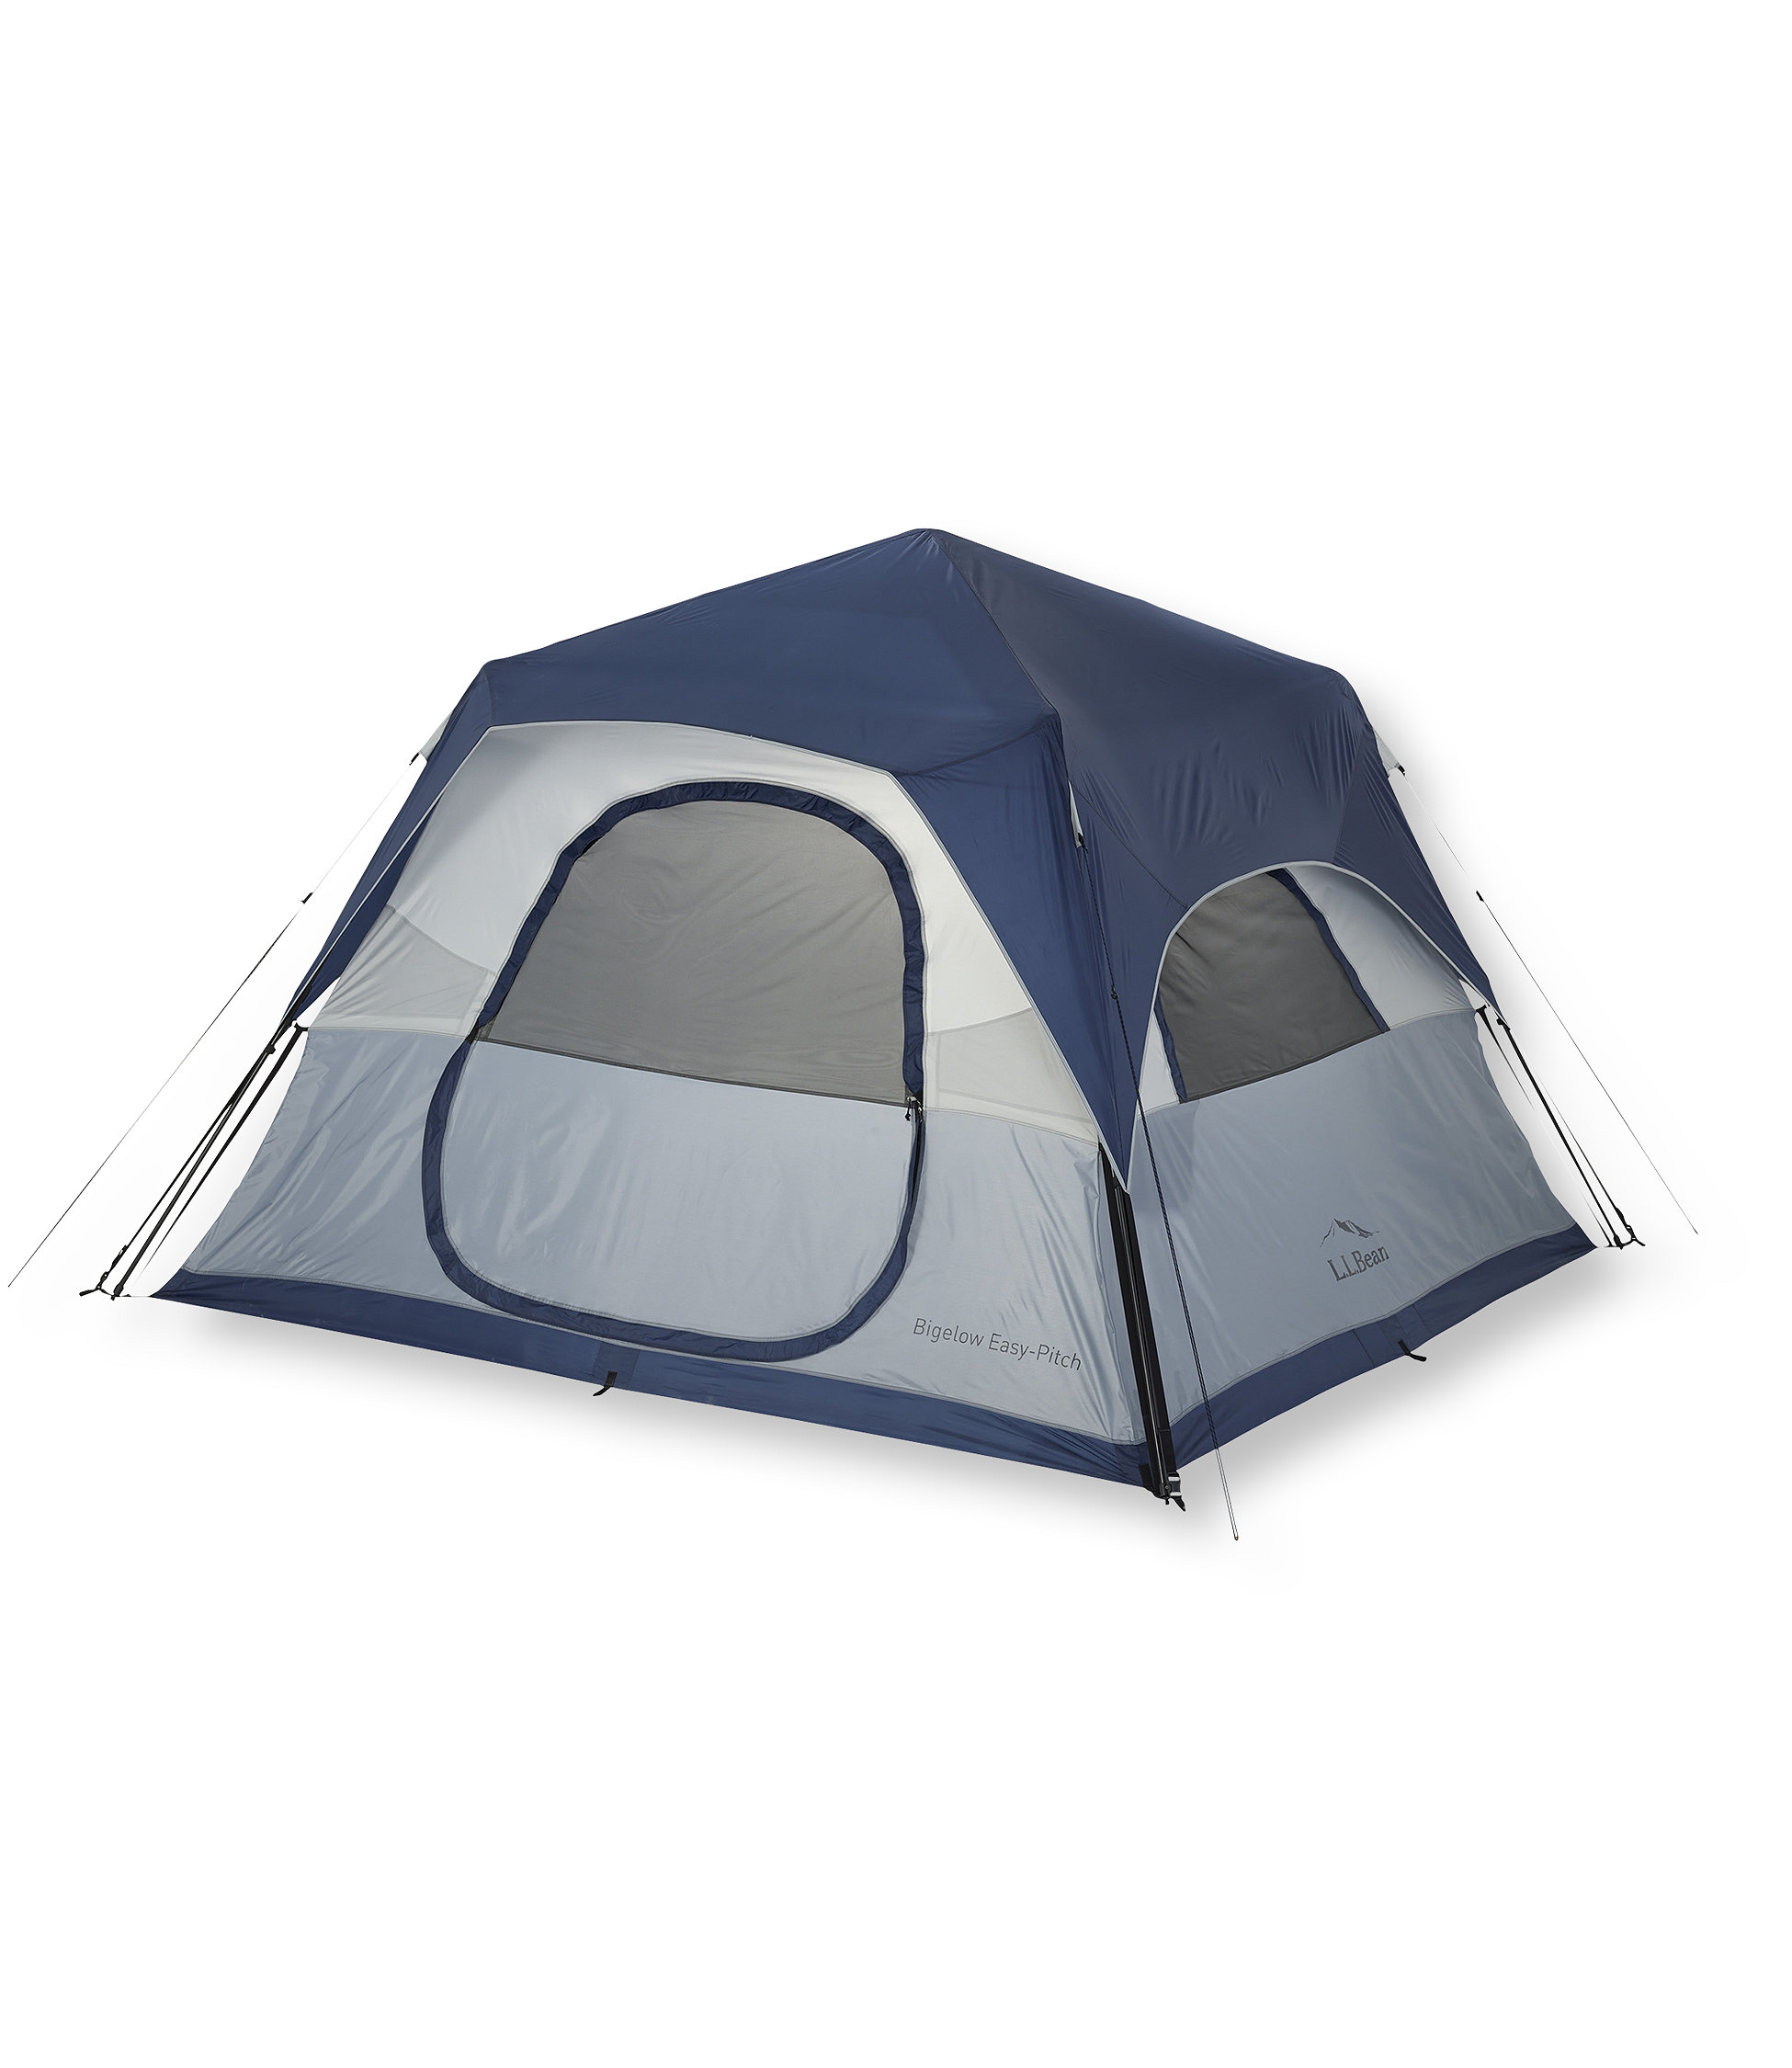 photo: L.L.Bean Bigelow Easy-Pitch 6-Person Folding Tent three-season tent